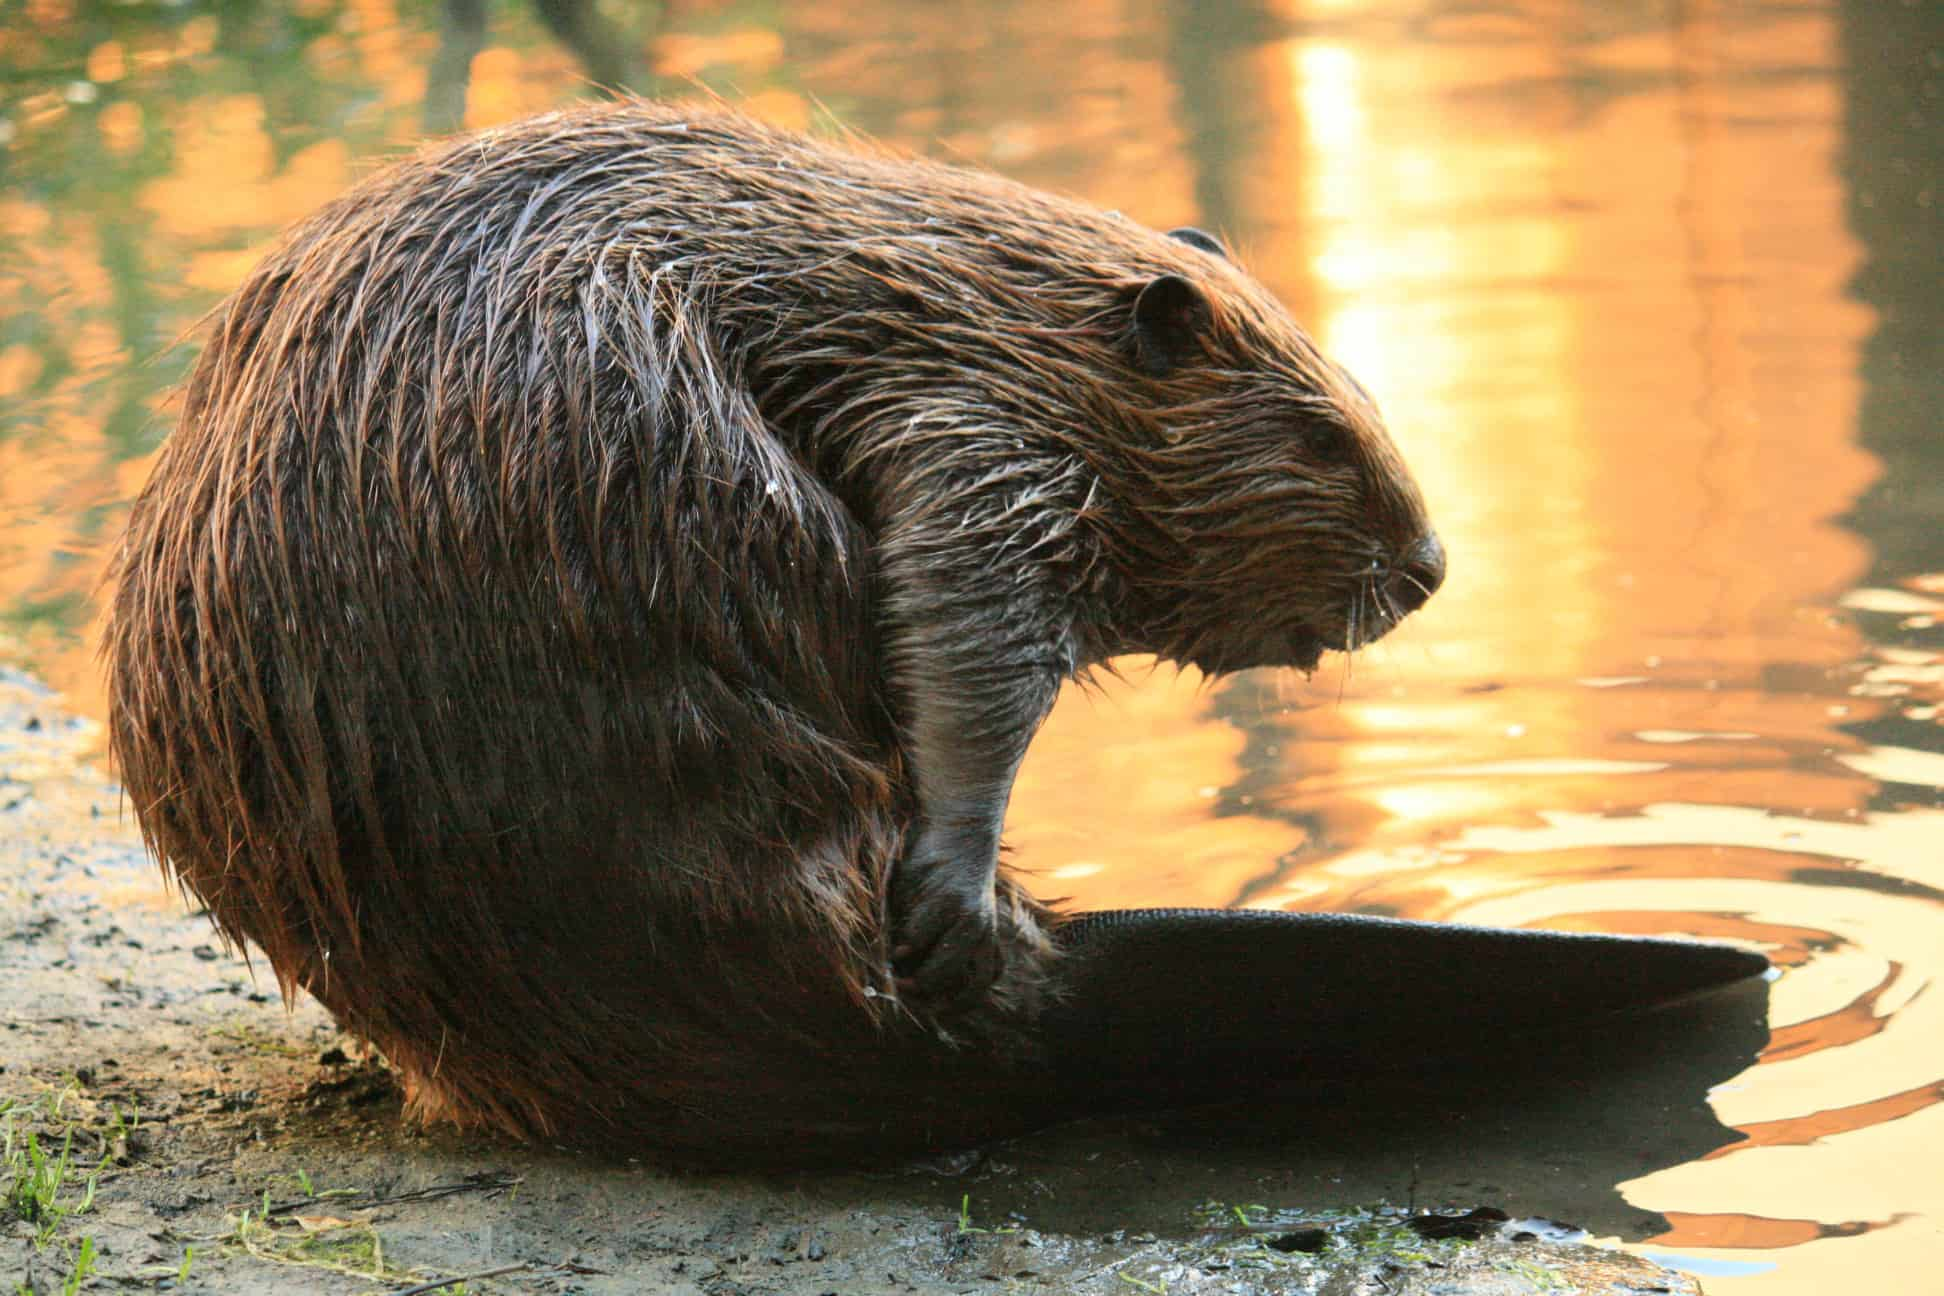 How big is a Beaver?